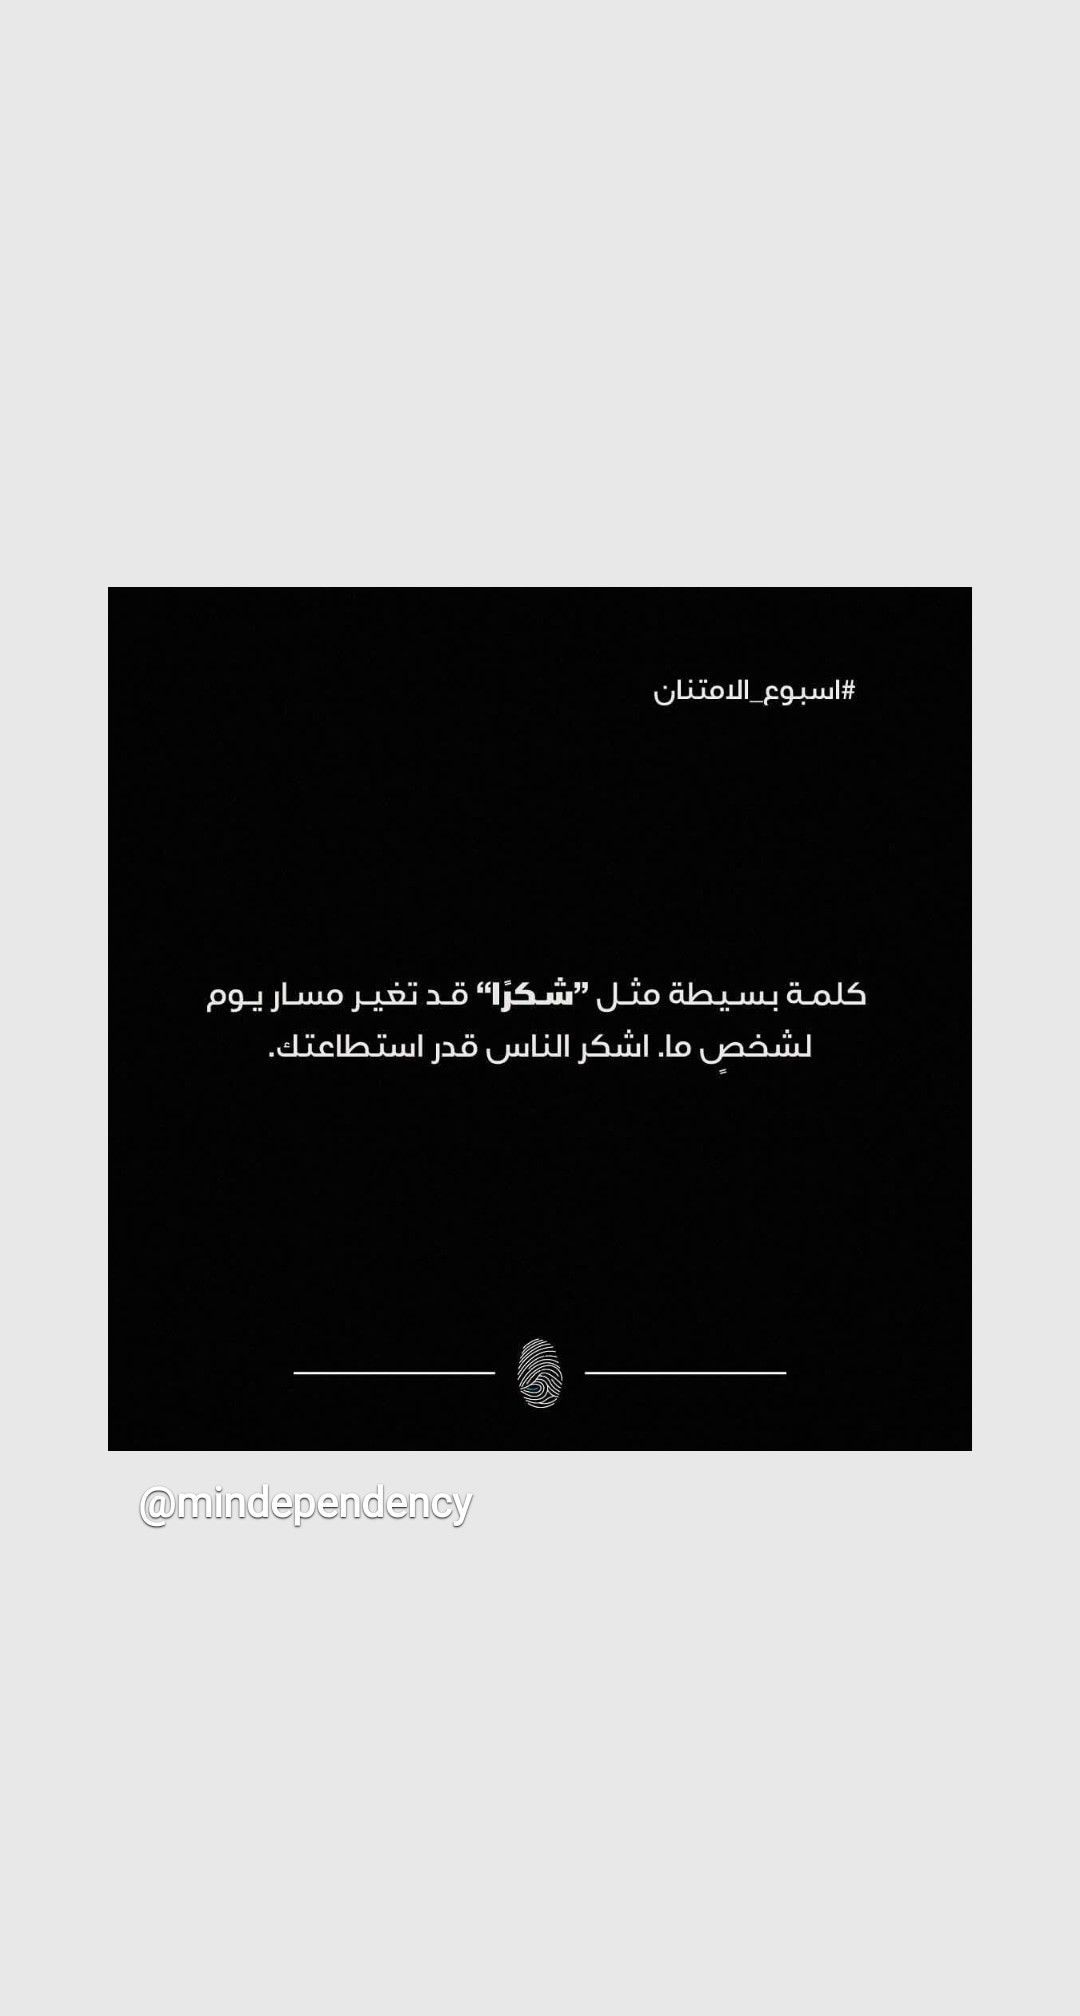 Pin By Tagreed Mohamed On Arabic Quotes Cards Against Humanity Cards Arabic Quotes